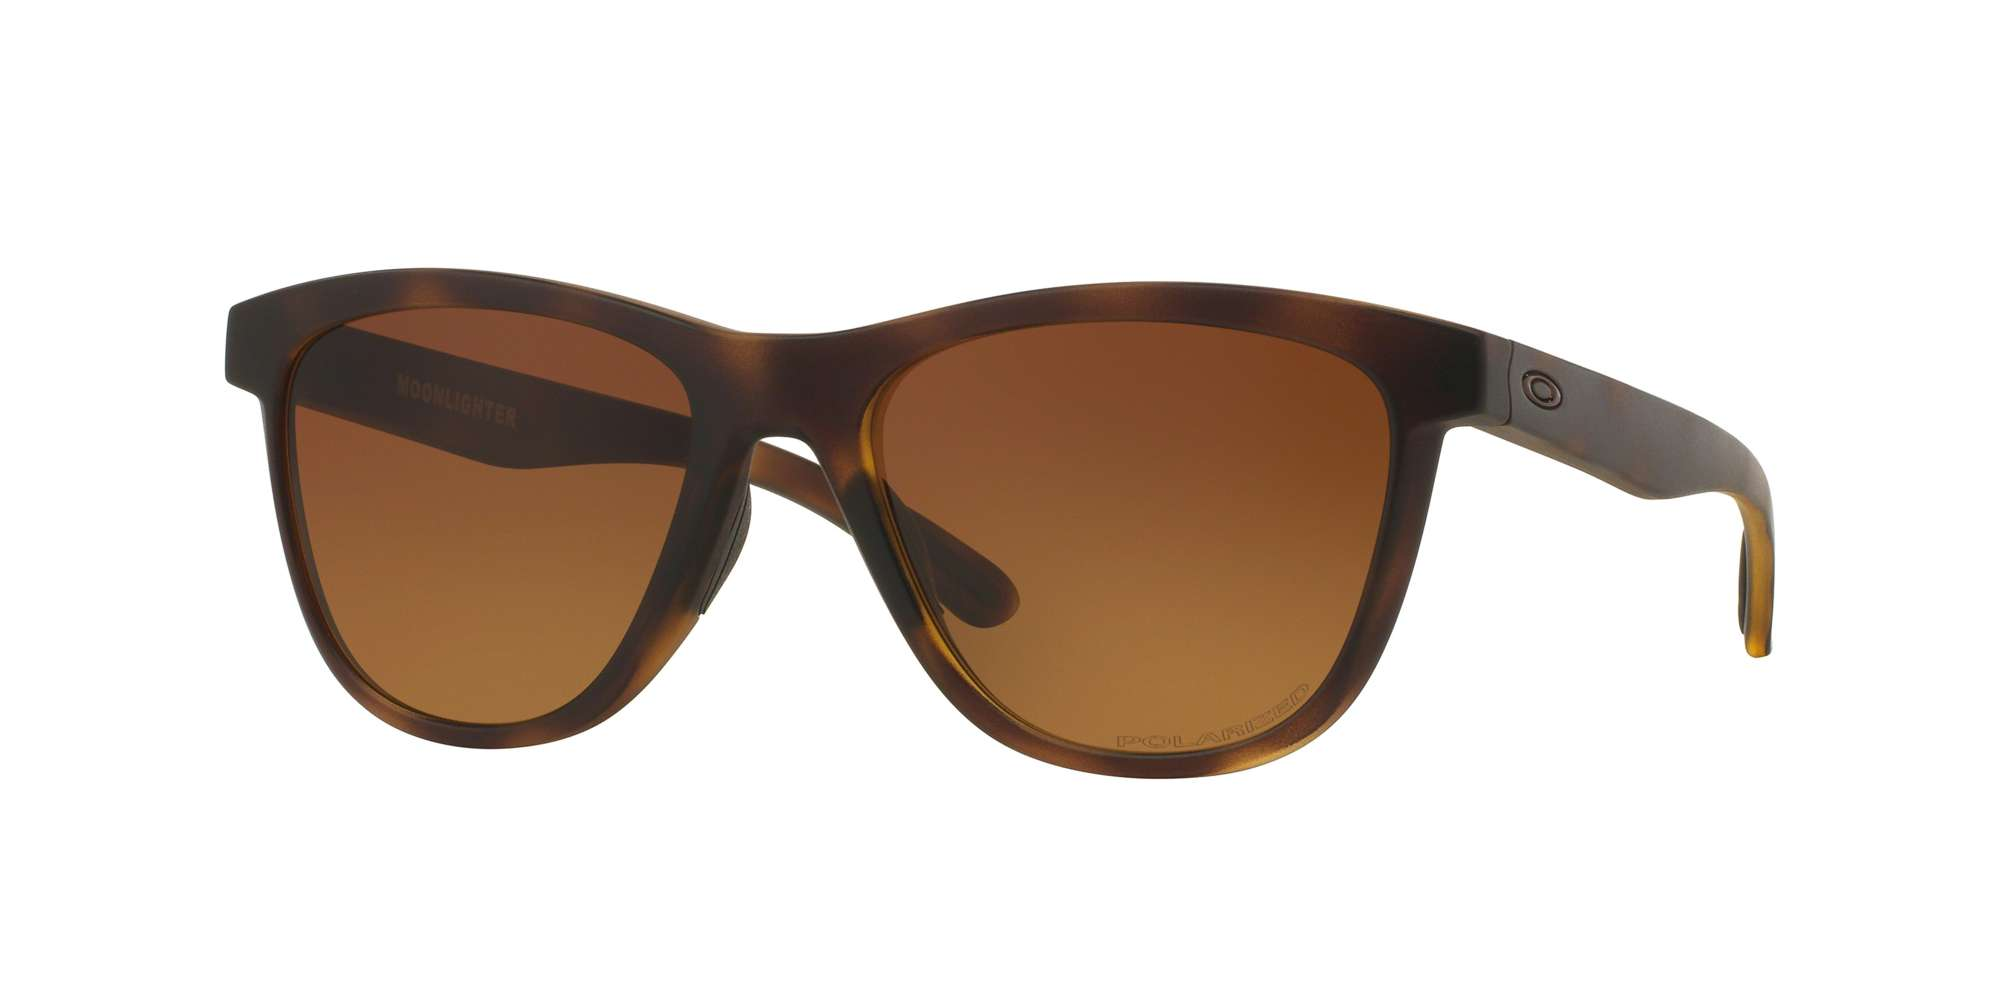 BROWN TORTOISE / BROWN GRADIENT POLAR lenses